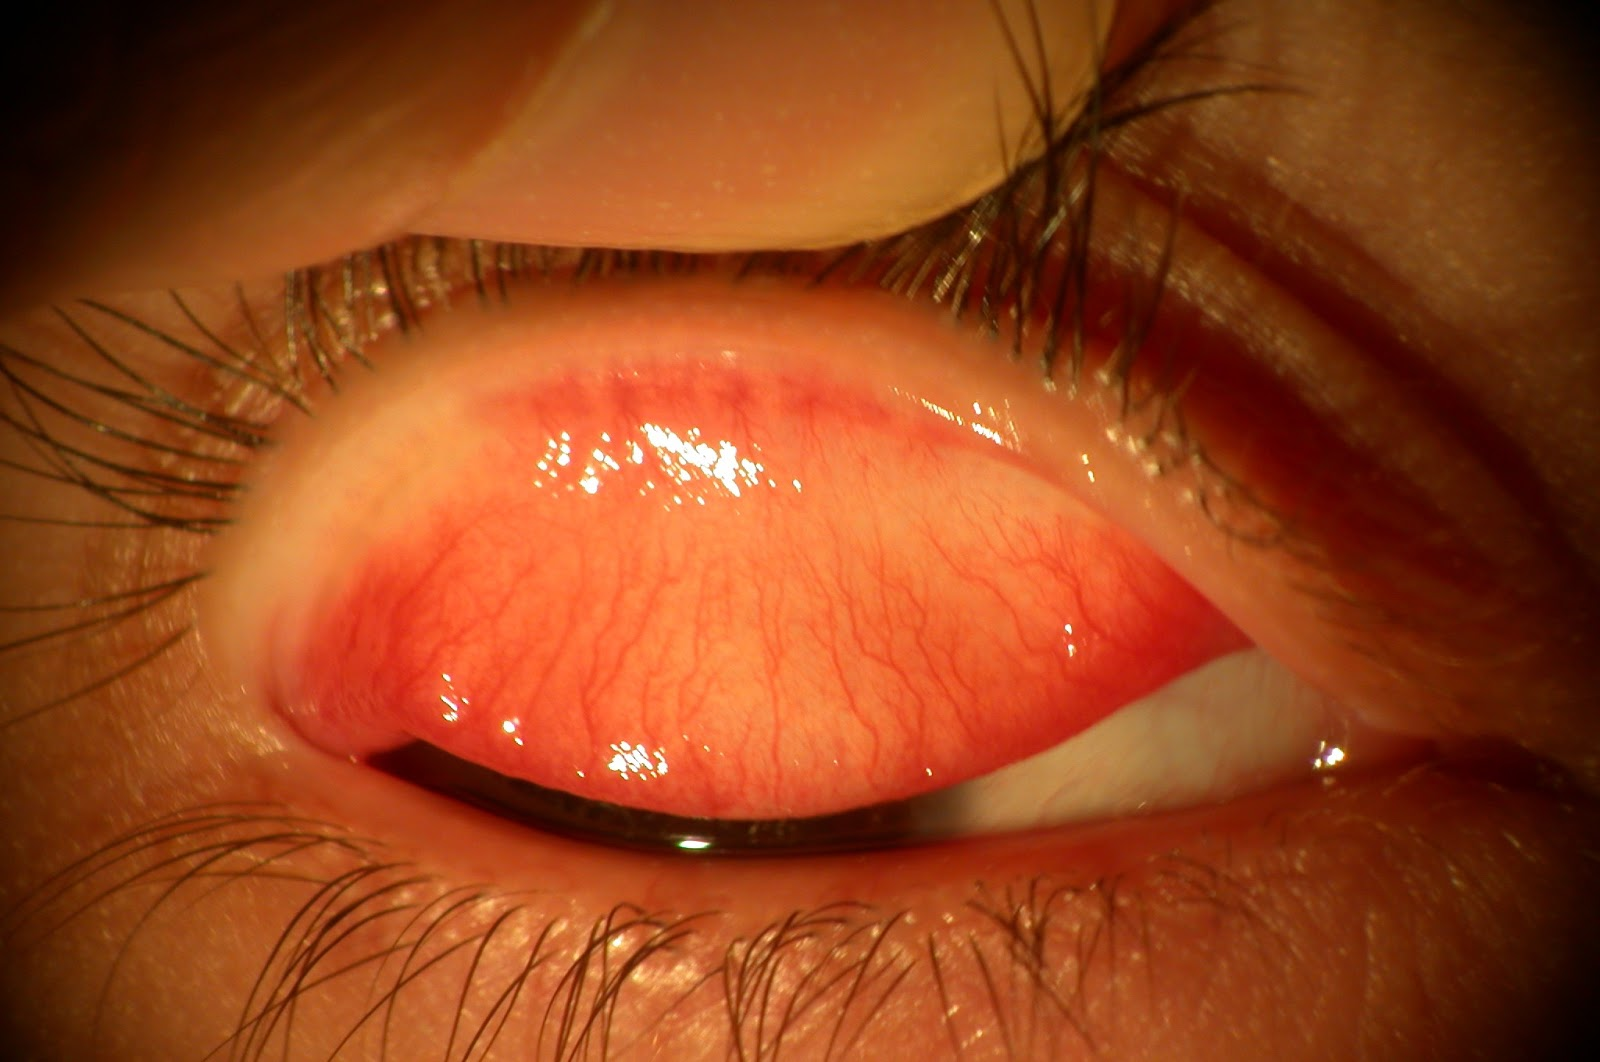 What is Giant Papillary Conjunctivitis - Definition ...